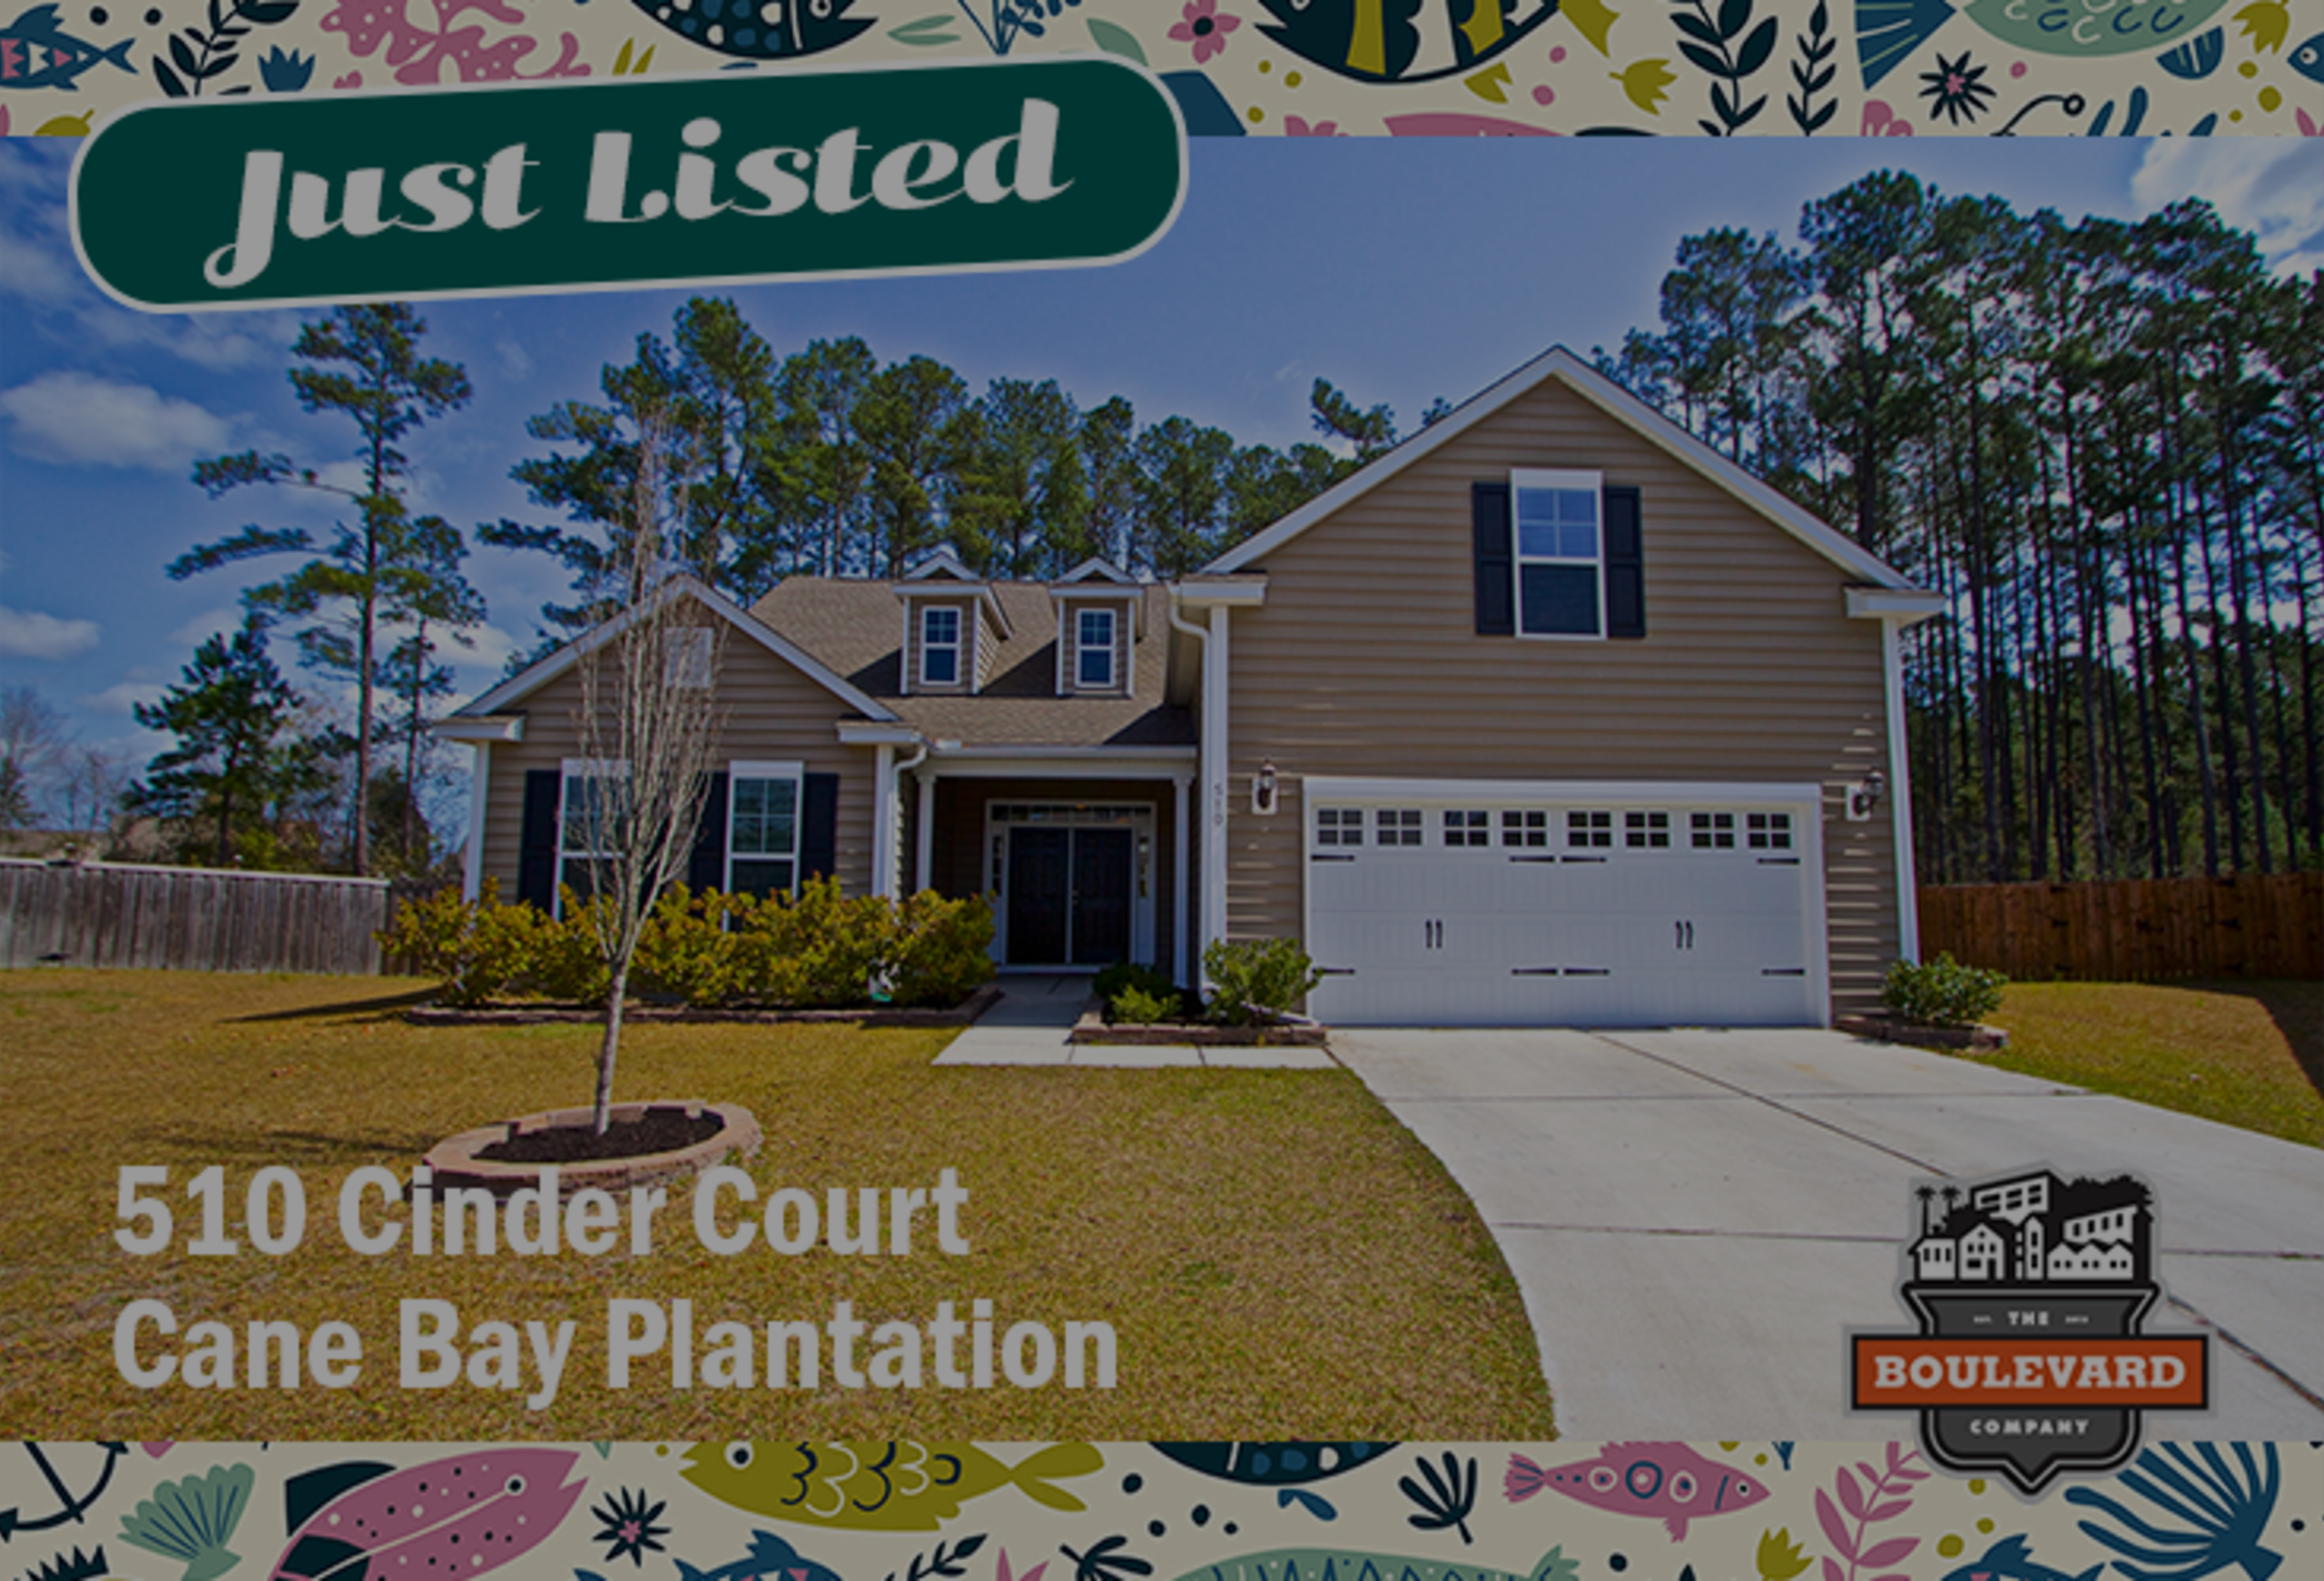 new listing: 510 Cinder Court in Cane Bay Plantation